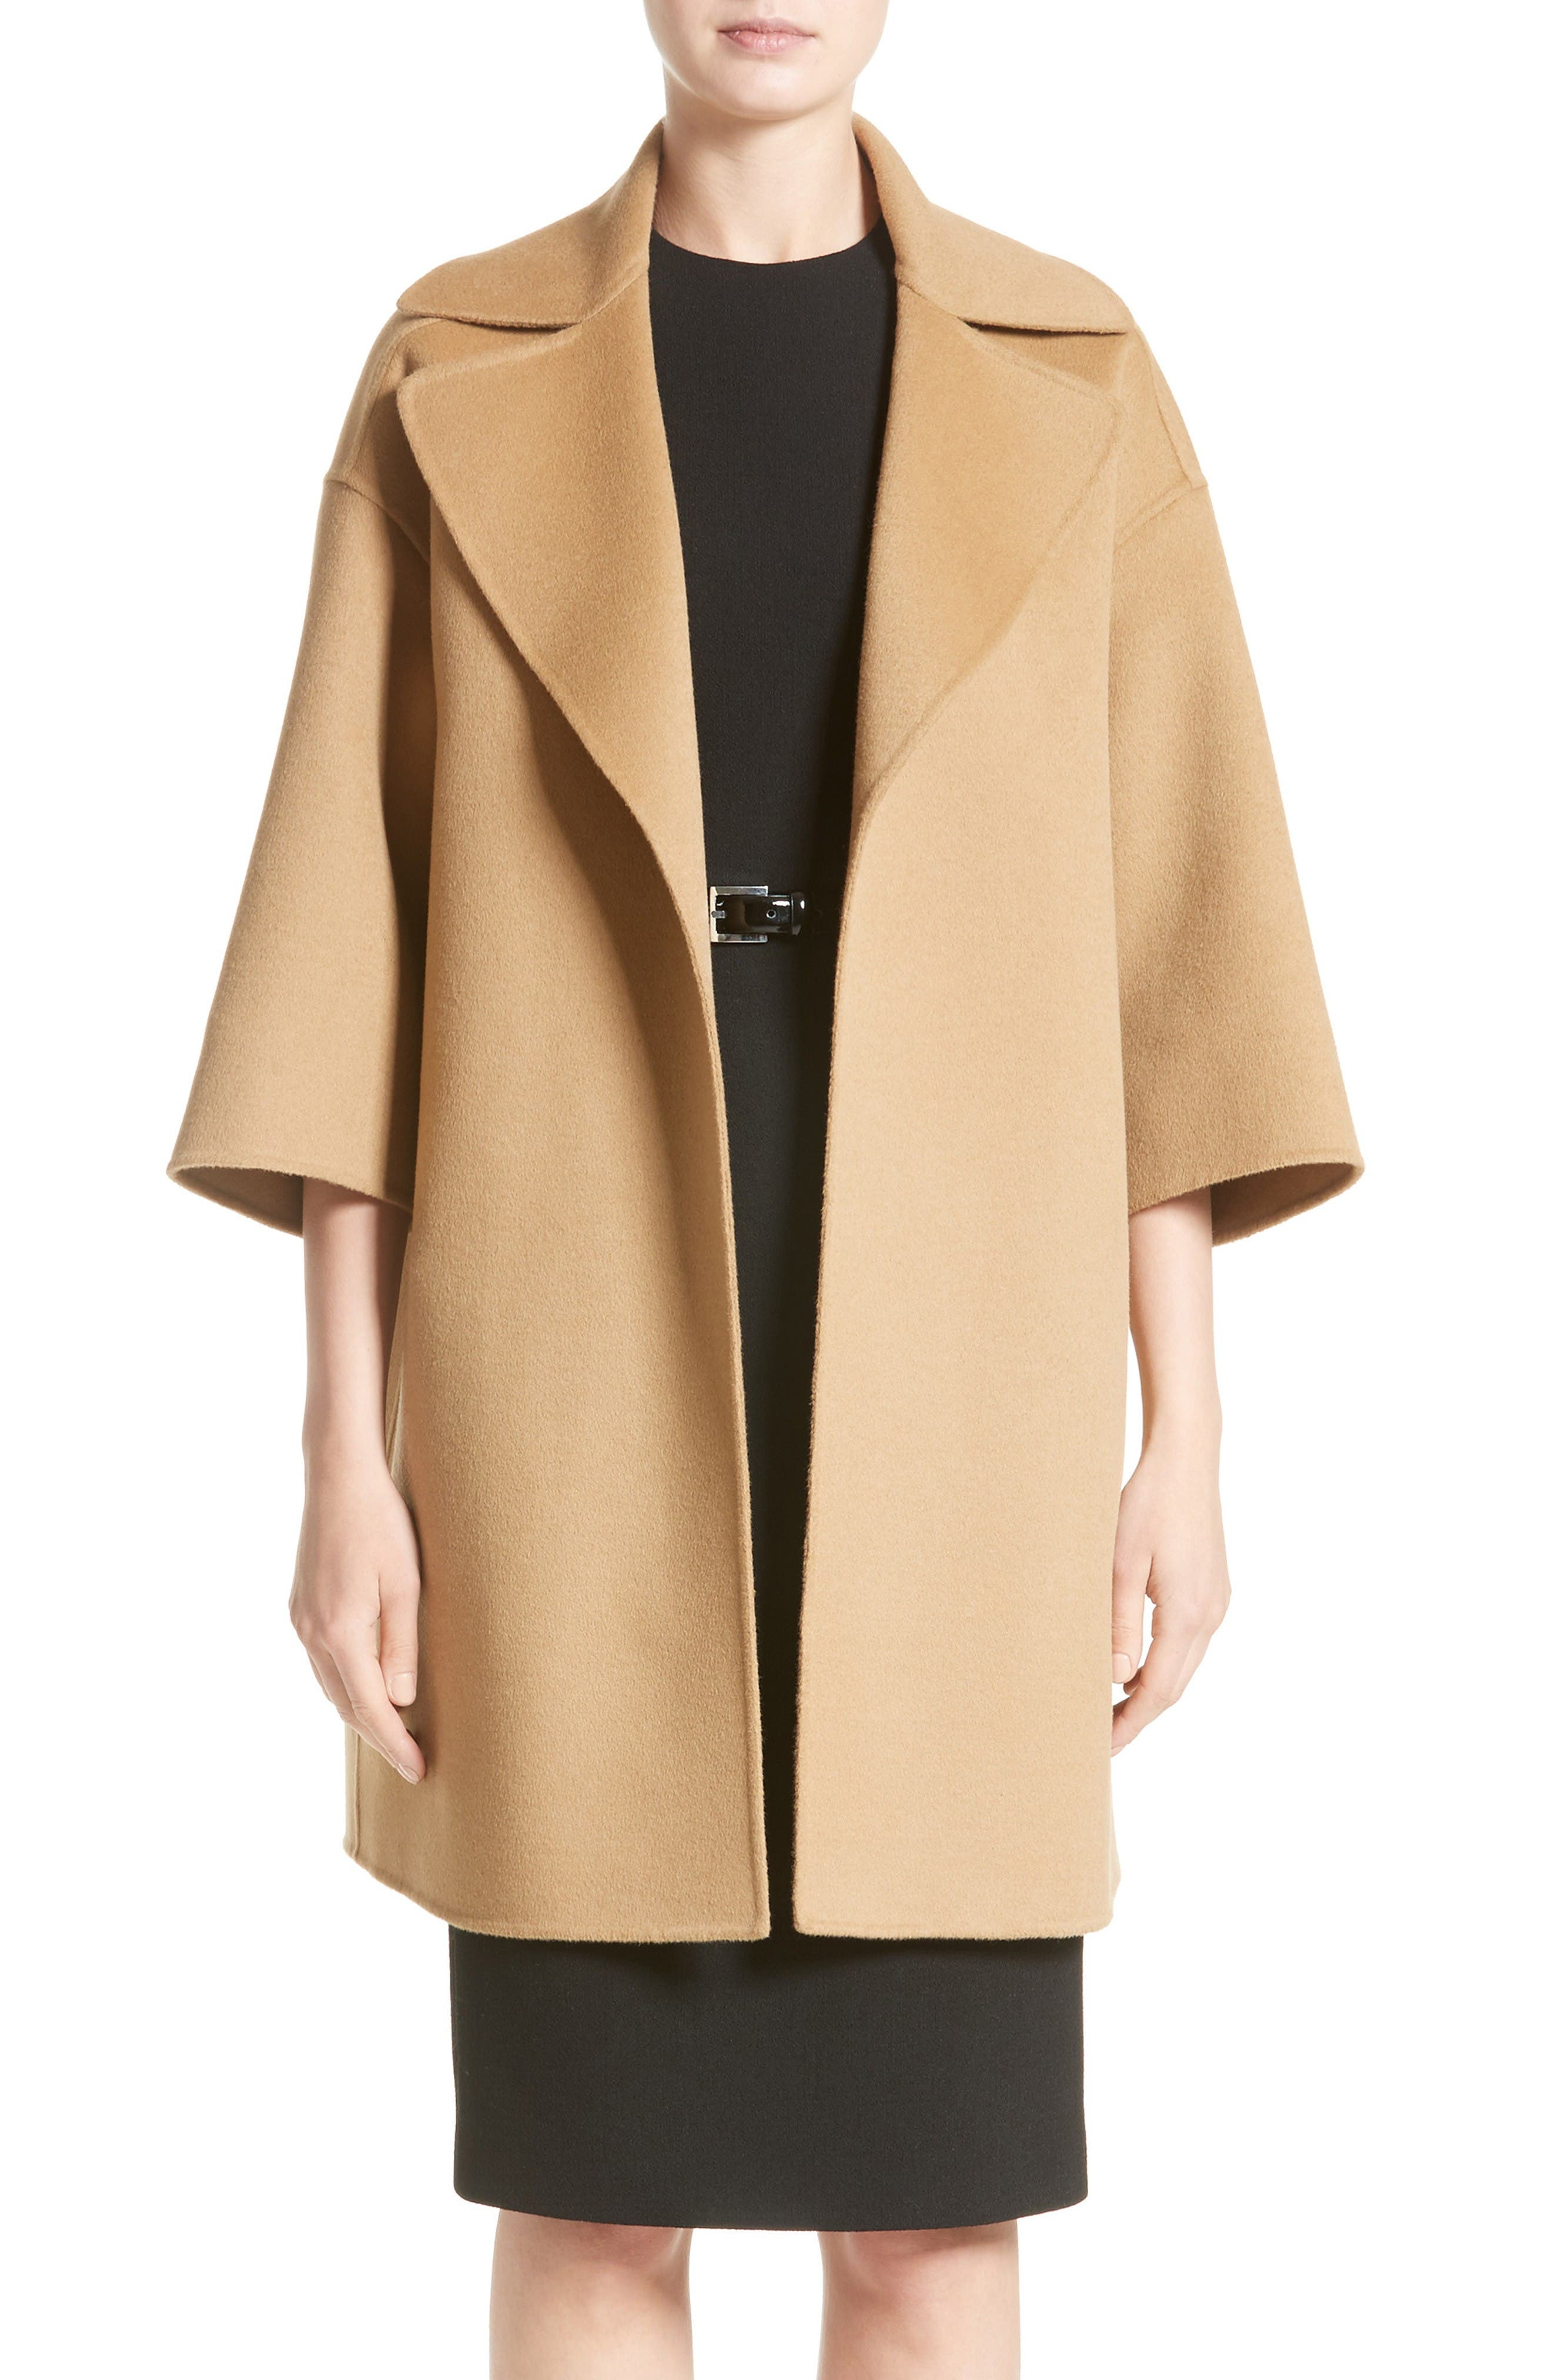 Wool Blend Coat,                         Main,                         color, Chino